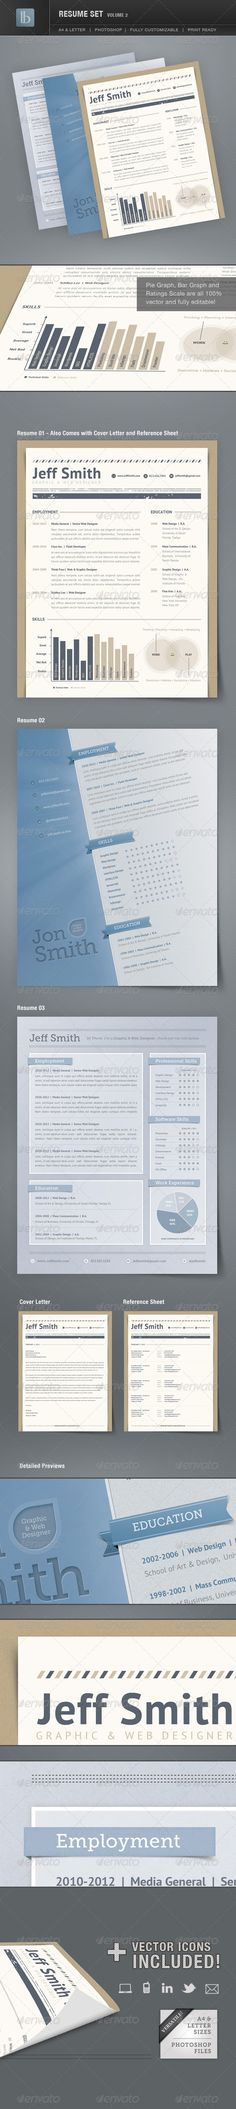 Resume Set | Volume 2 - GraphicRiver Item for Sale